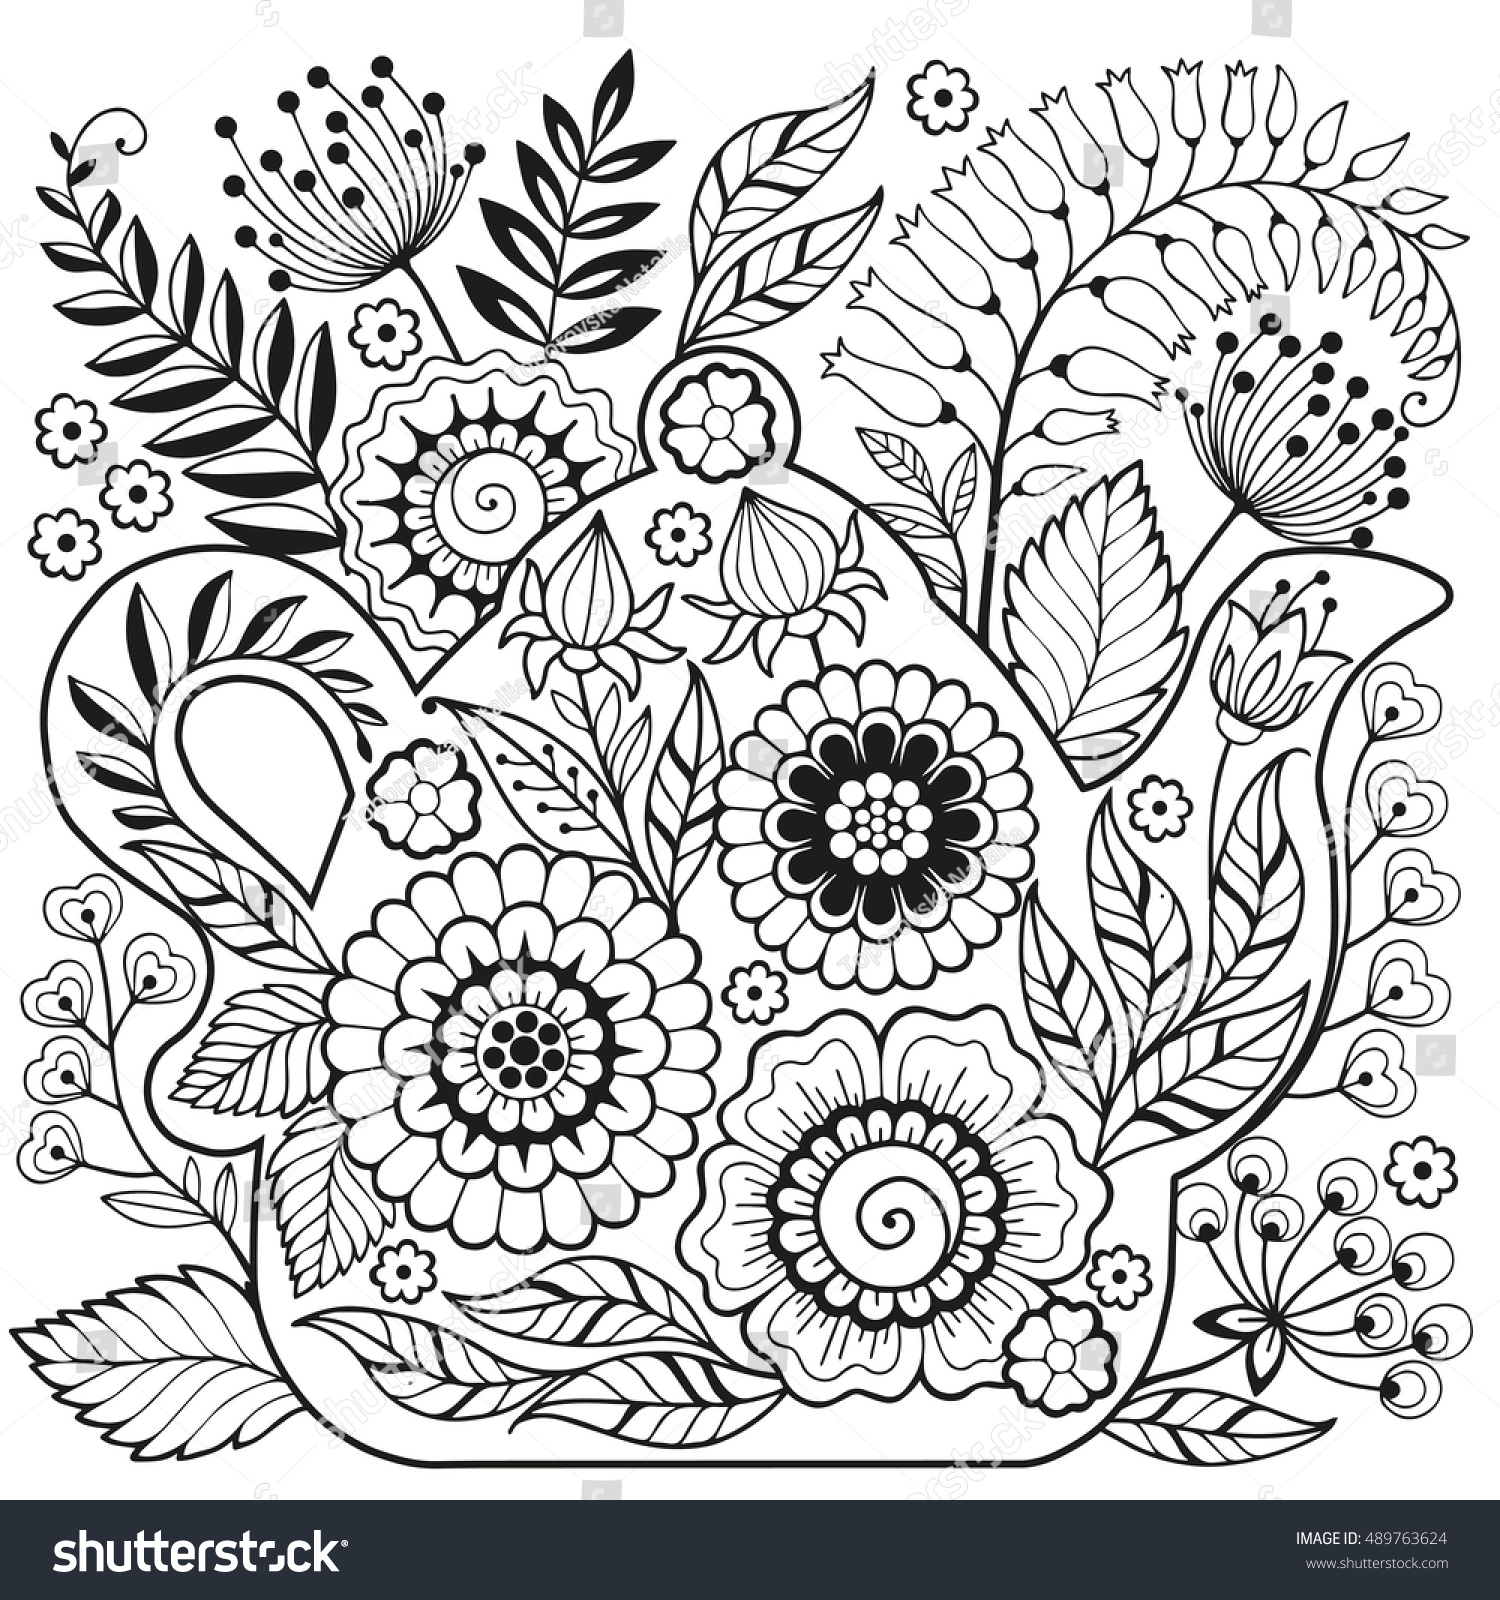 vector coloring page meditation relax stock vector 489763624